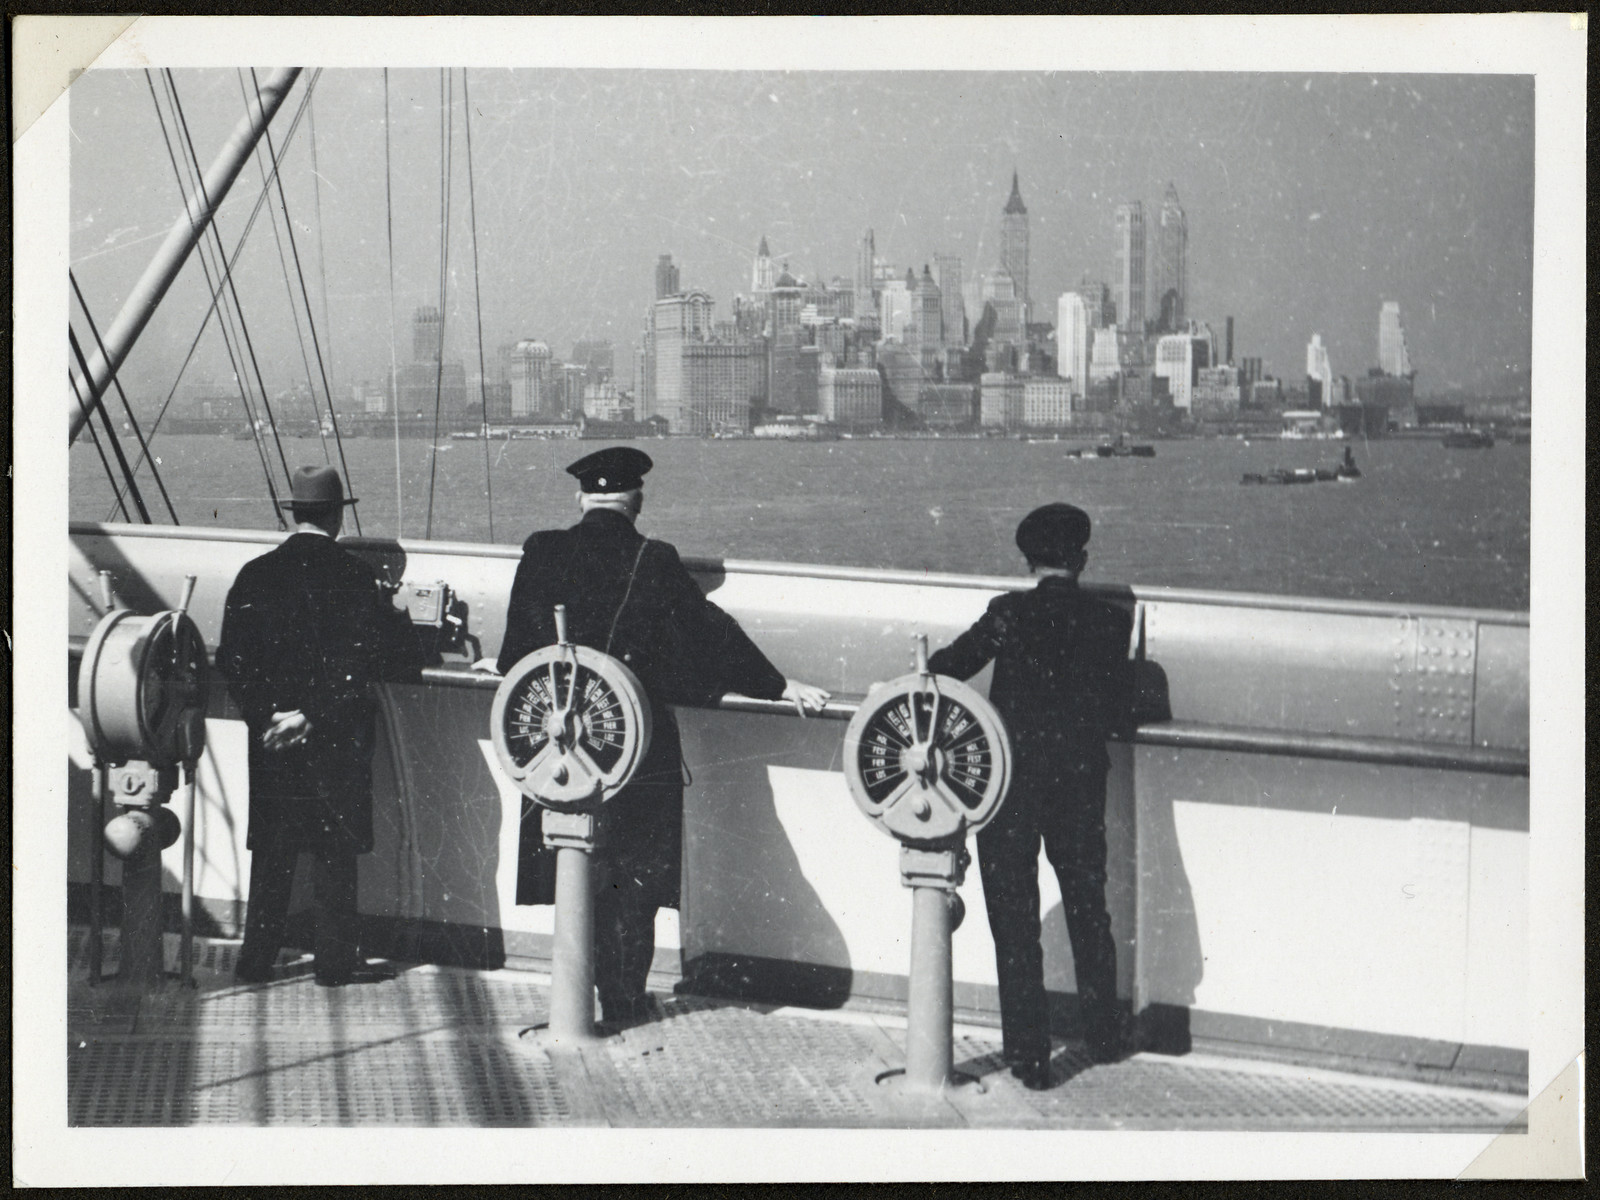 A ship pulls into New York harbor; the skyline can be seen in the background.